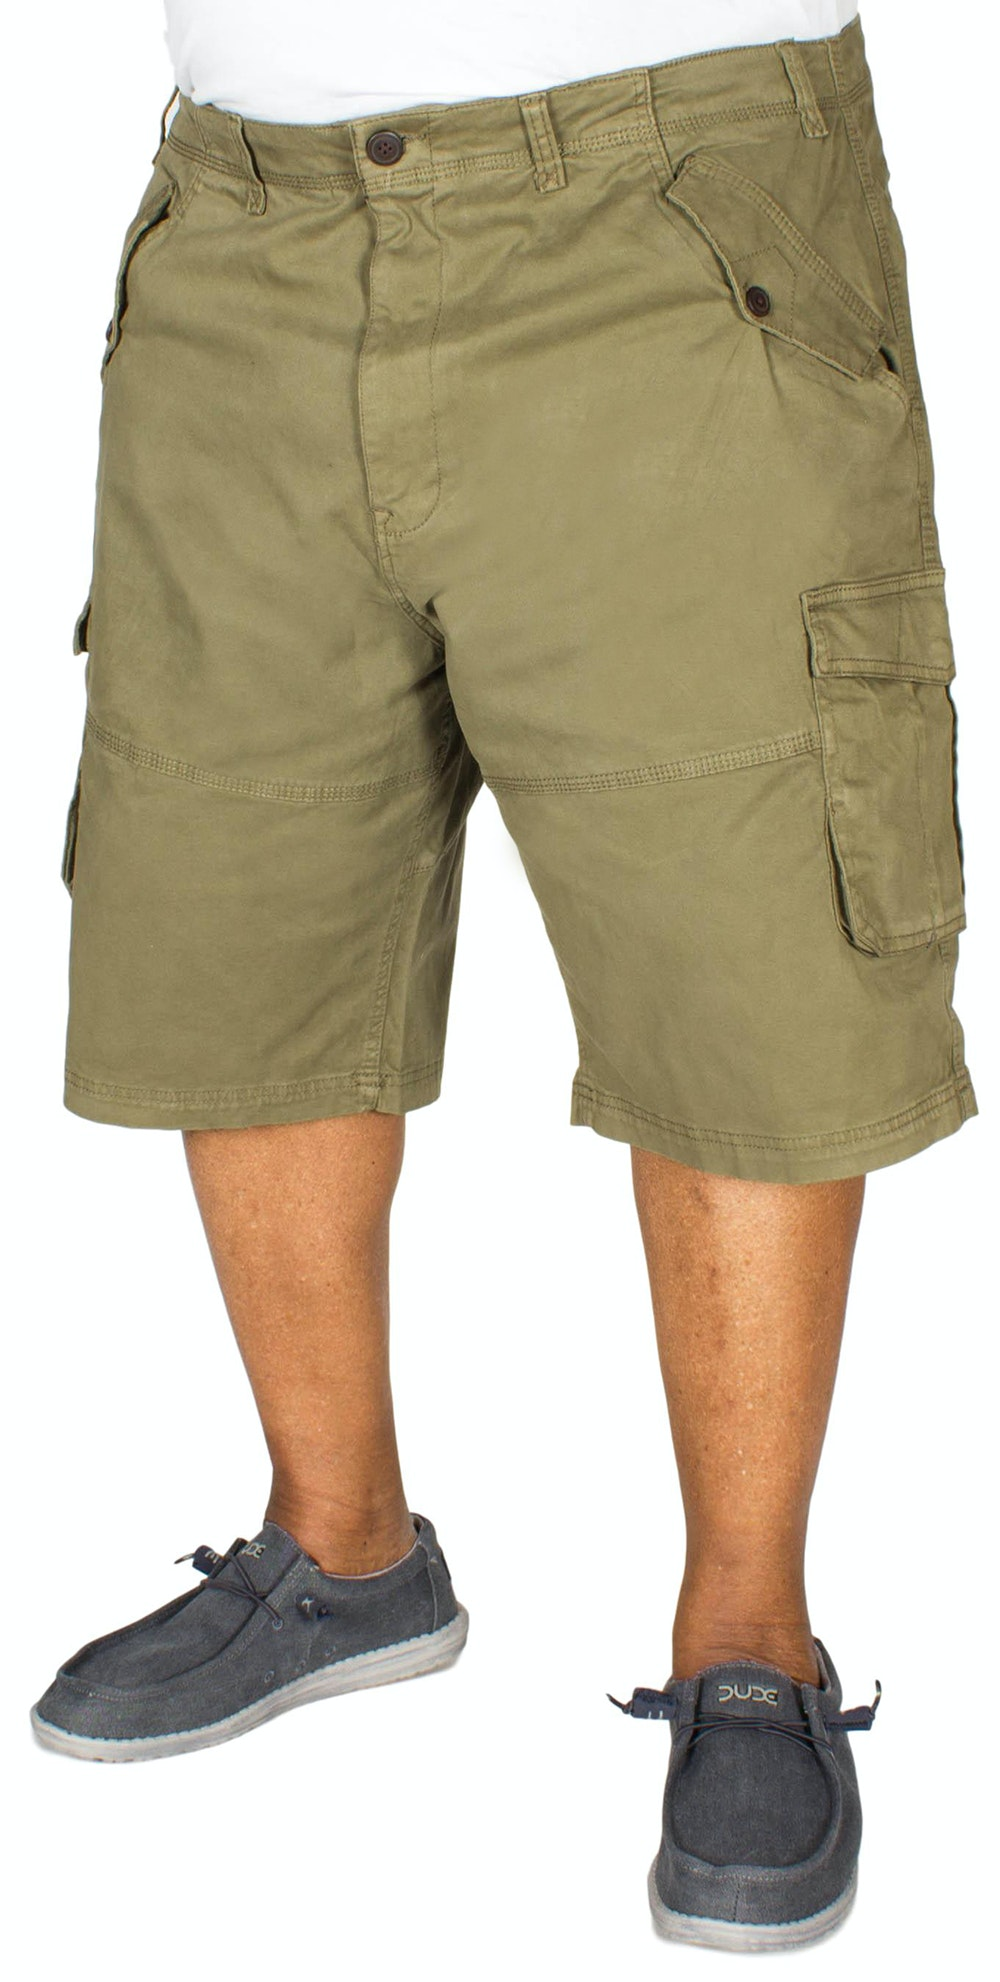 KAM Stretch Cargo Shorts Khaki